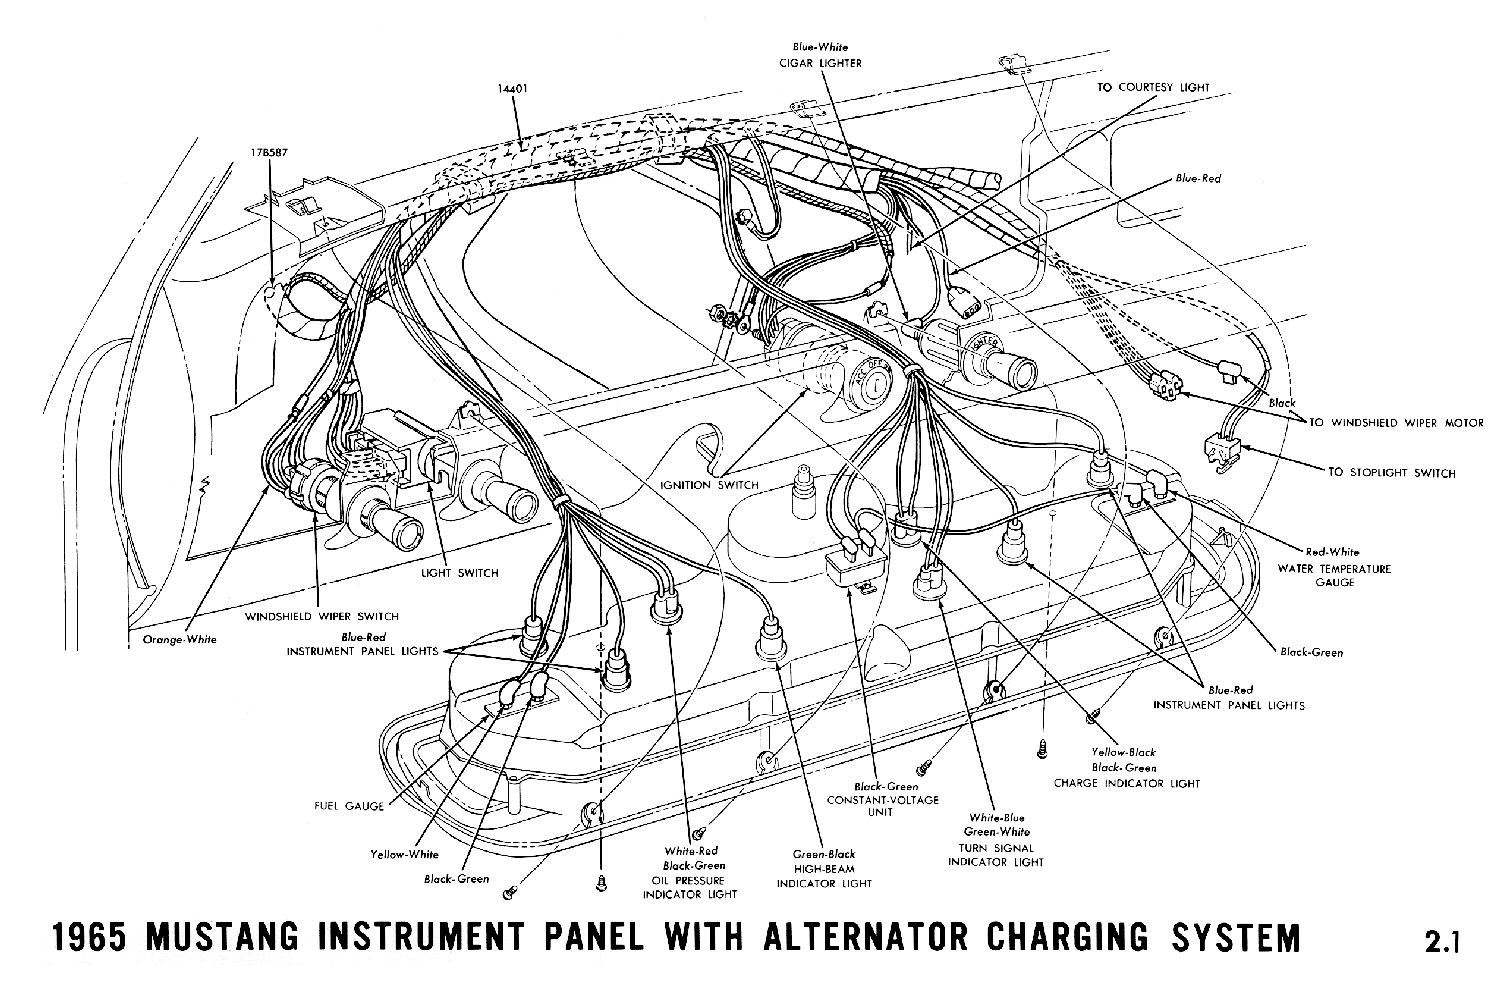 1967 Mustang Instrument Cluster Wiring Diagram Diy Enthusiasts And Vacuum Diagrams Archives Average Joe Restoration Rh Averagejoerestoration Com 67 Dash Schematics